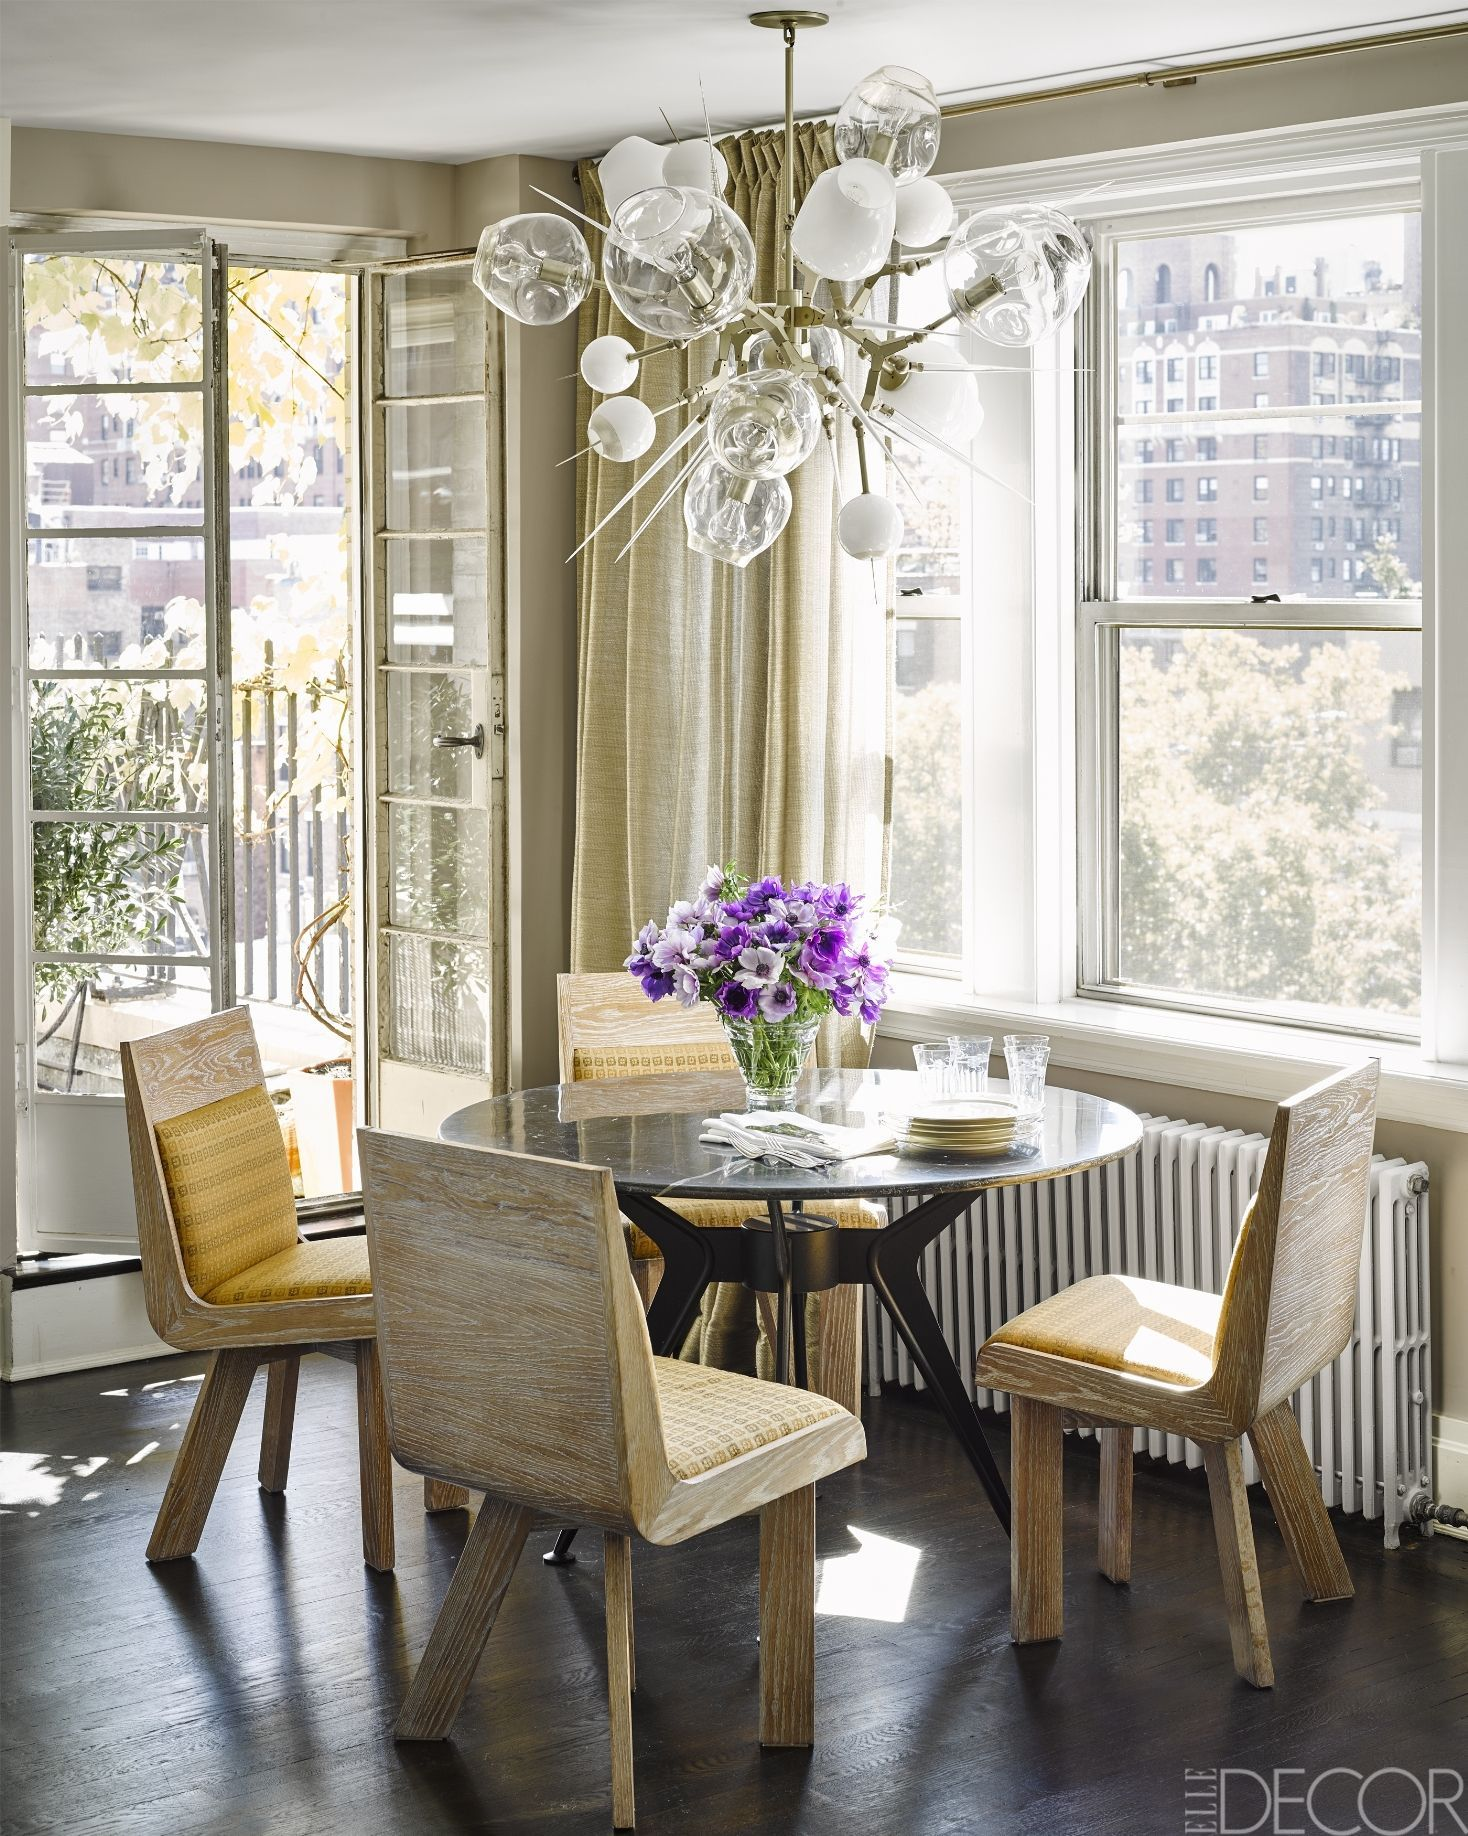 When Academy Award winner Marisa Tomei doubled the size of her Manhattan apartment, itgave her even more opportunity to indulge in her passion for beautiful objects.